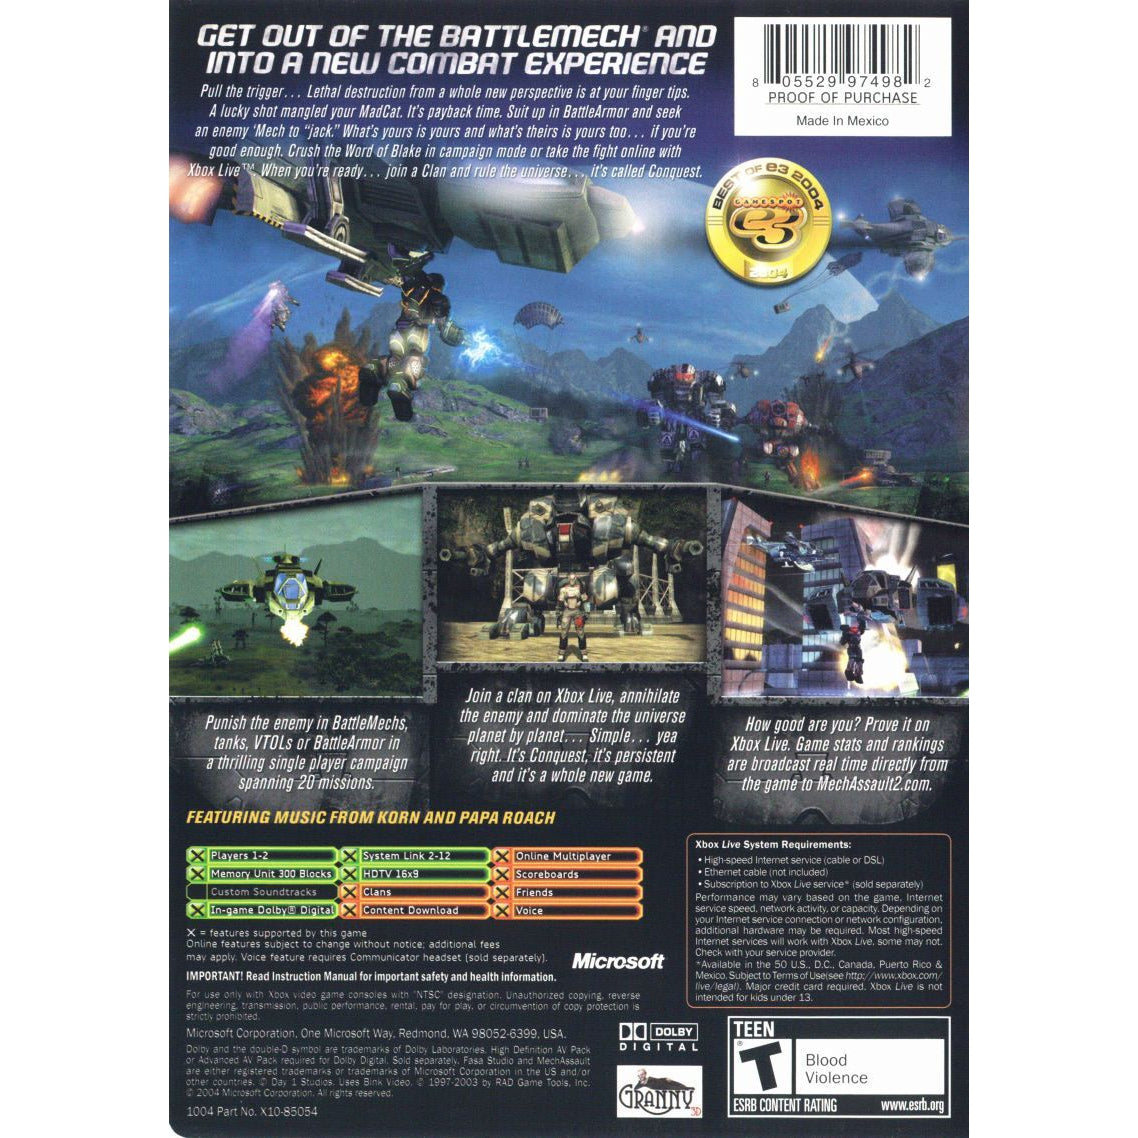 MechAssault 2: Lone Wolf - Microsoft Xbox Game Complete - YourGamingShop.com - Buy, Sell, Trade Video Games Online. 120 Day Warranty. Satisfaction Guaranteed.